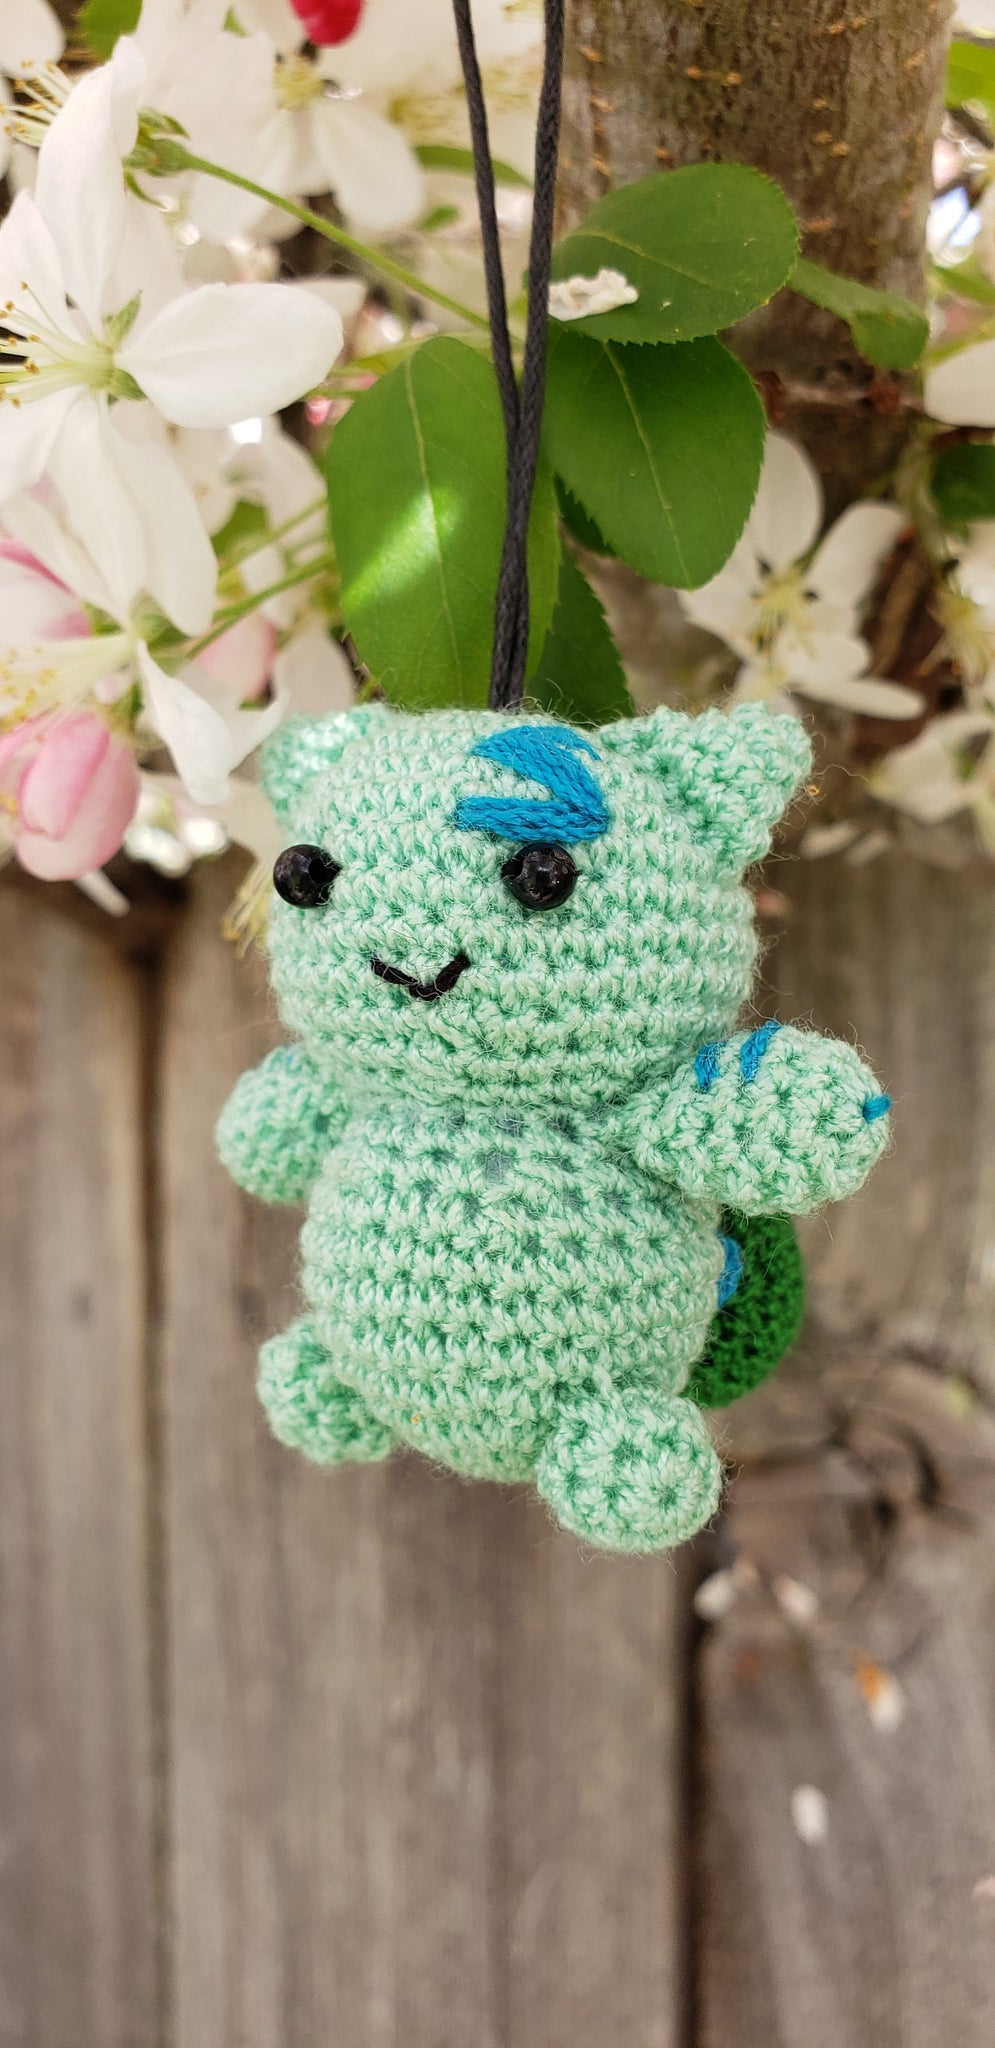 Bulbasaur finished doll , 2 inches Strap ornament ,Key chain .Car mirror hanger.